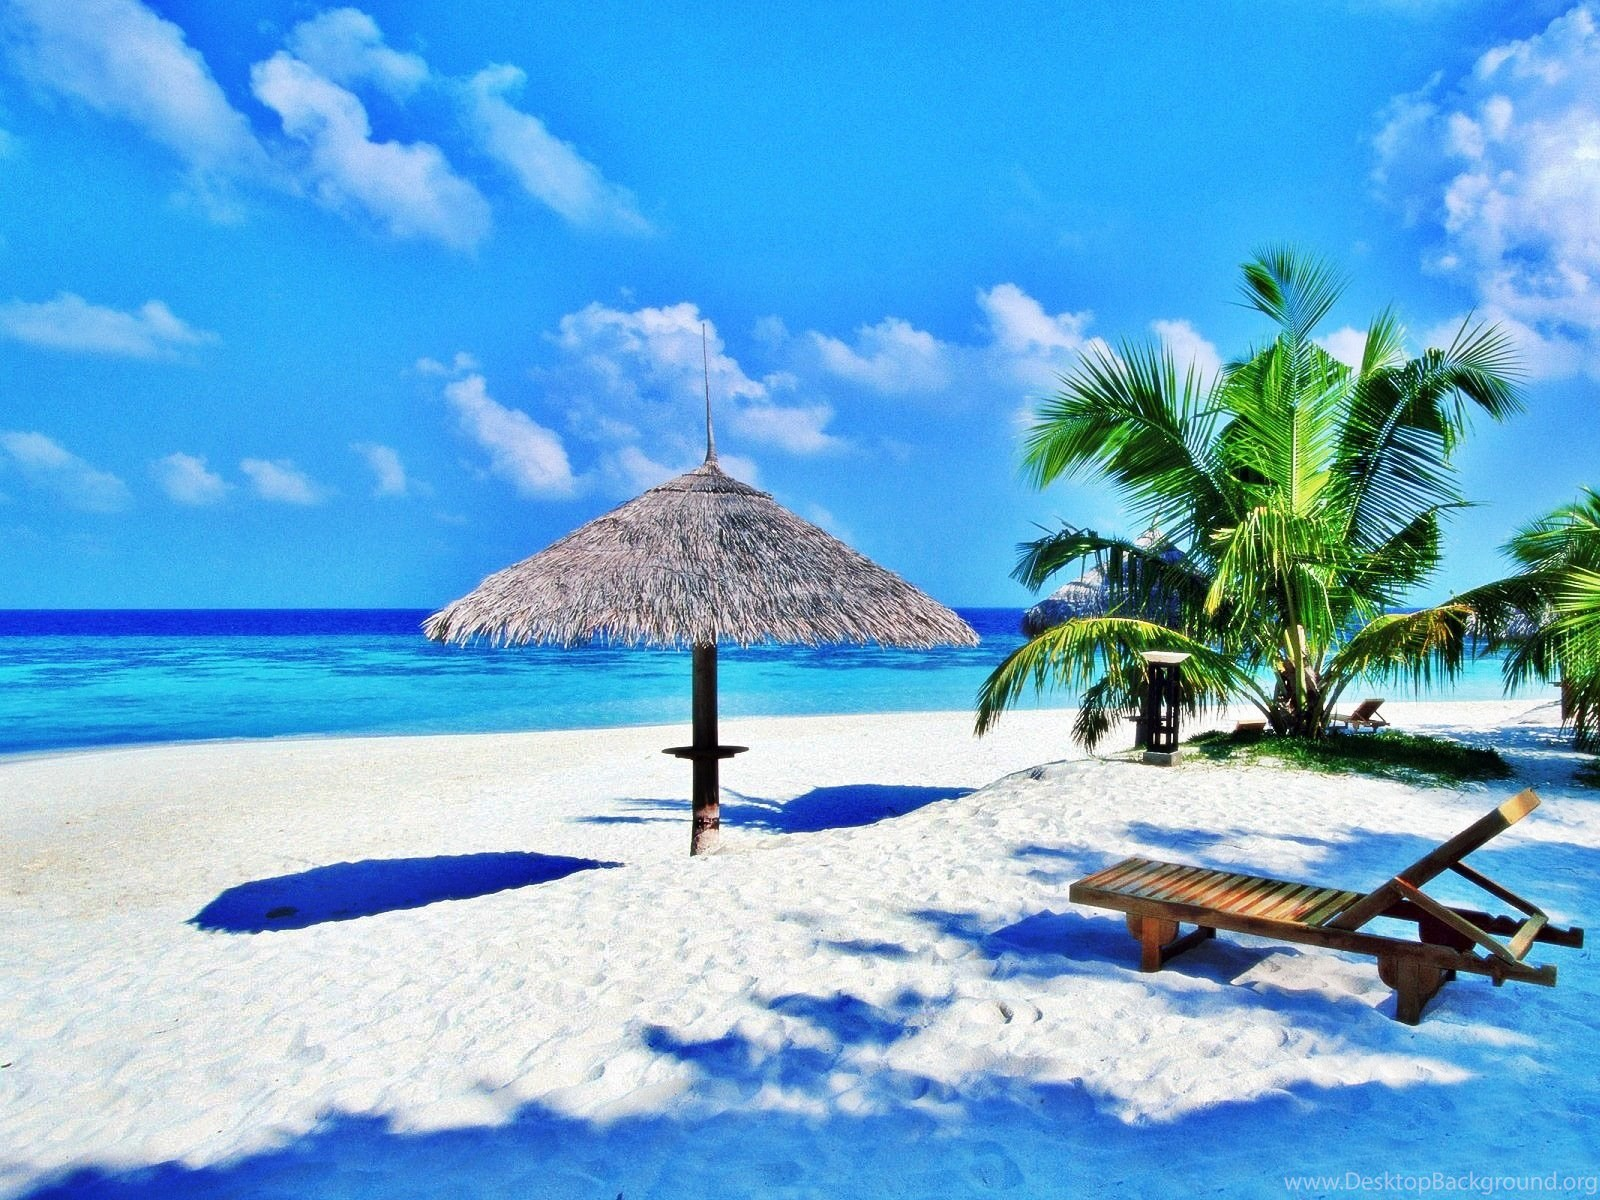 Best Beach Wallpaper: Wallpapers Suriname Bali Indonesia Best Beaches In The